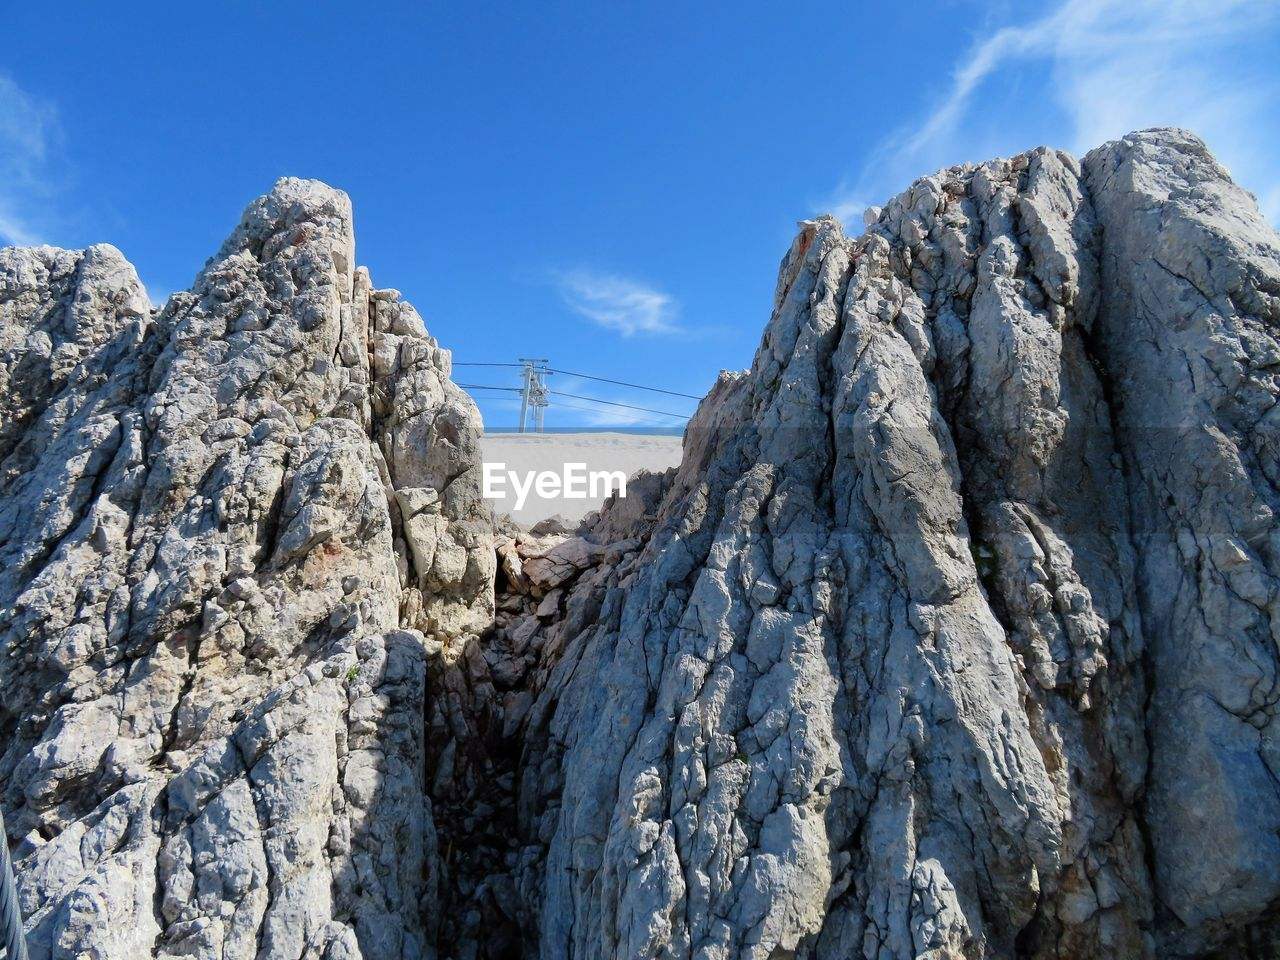 rock - object, sky, nature, day, outdoors, low angle view, beauty in nature, no people, mountain, blue, cold temperature, snow, tree, glacial